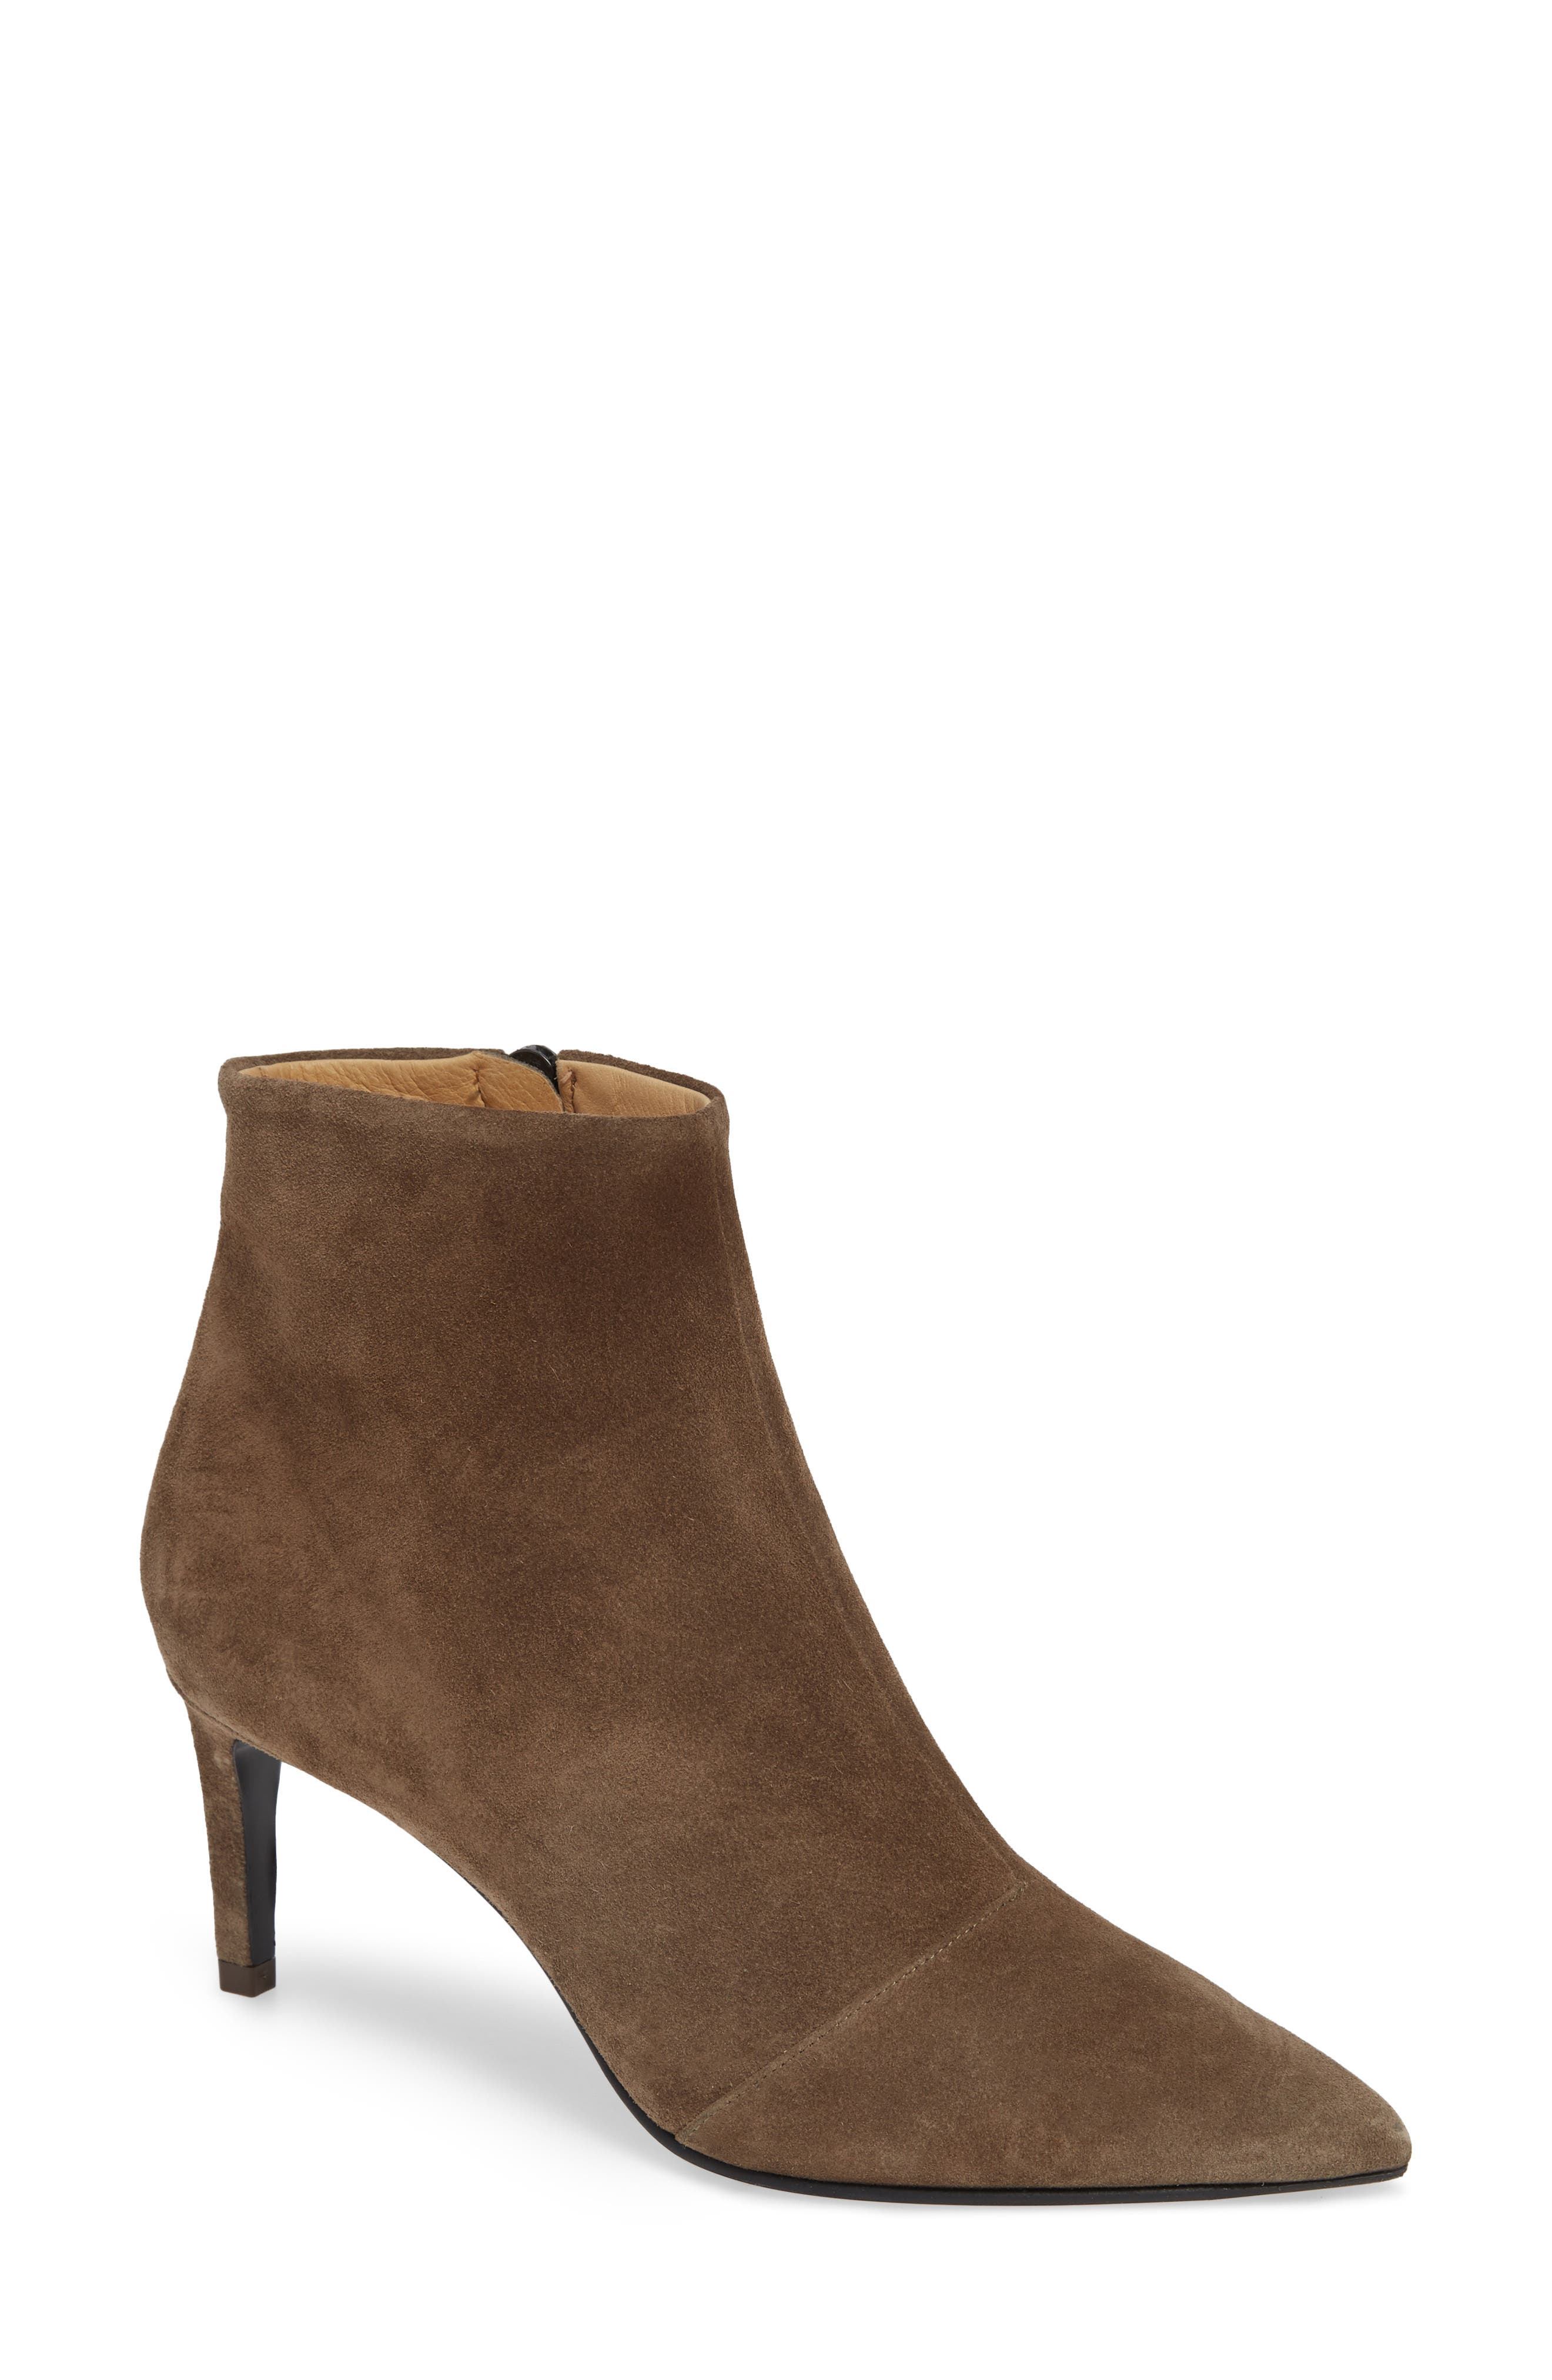 Beha Pointy Toe Bootie,                             Main thumbnail 1, color,                             TAUPE SUEDE